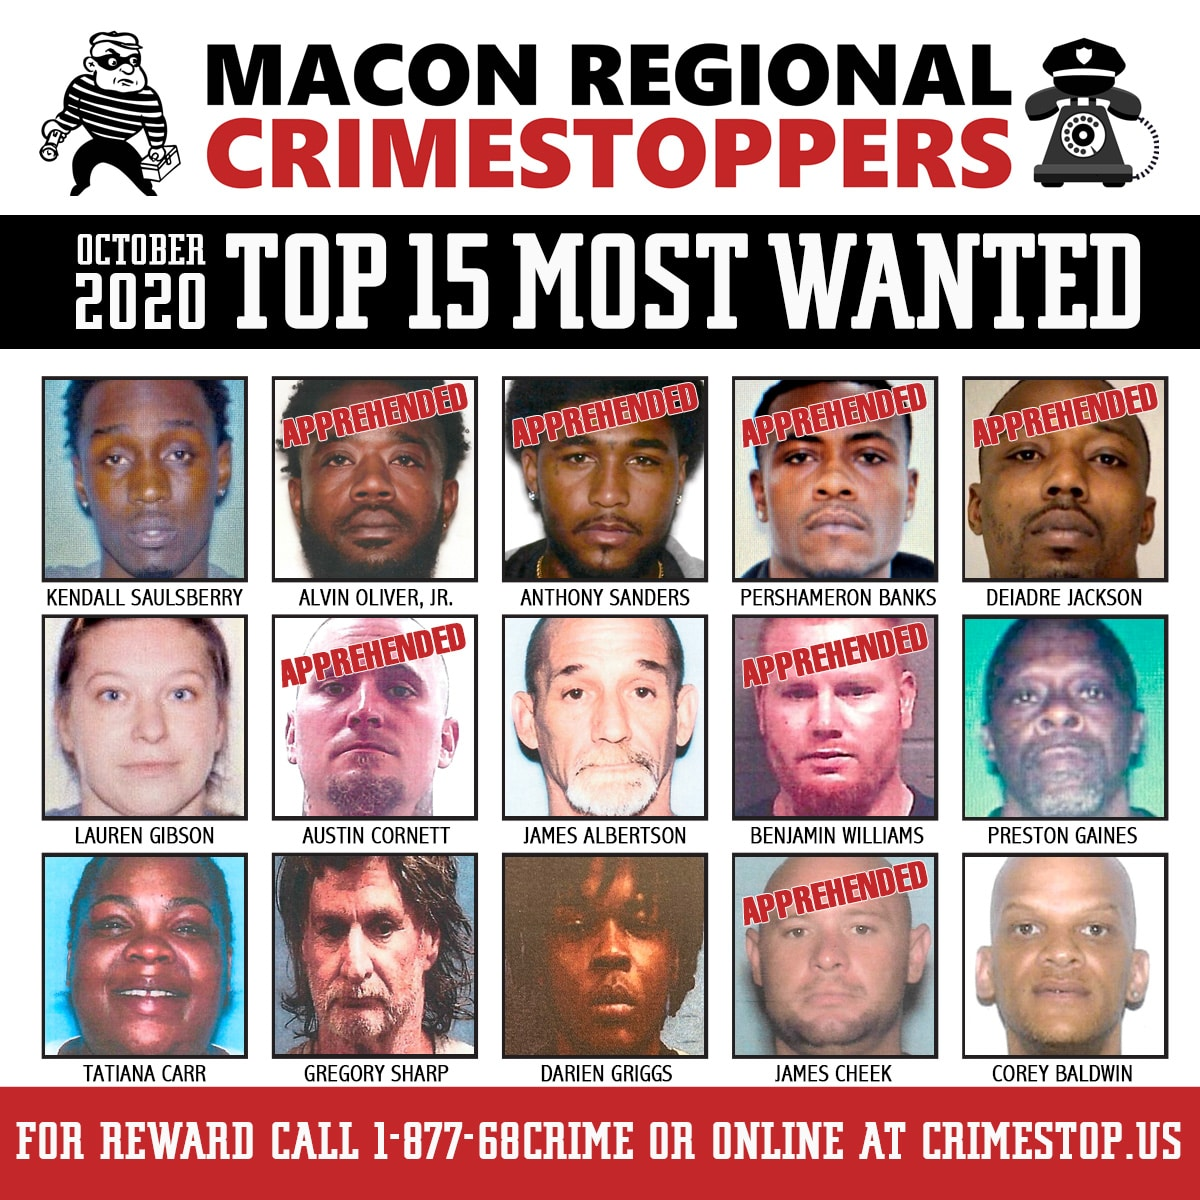 TOP 15 MOST WANTED OCTOBER 2020